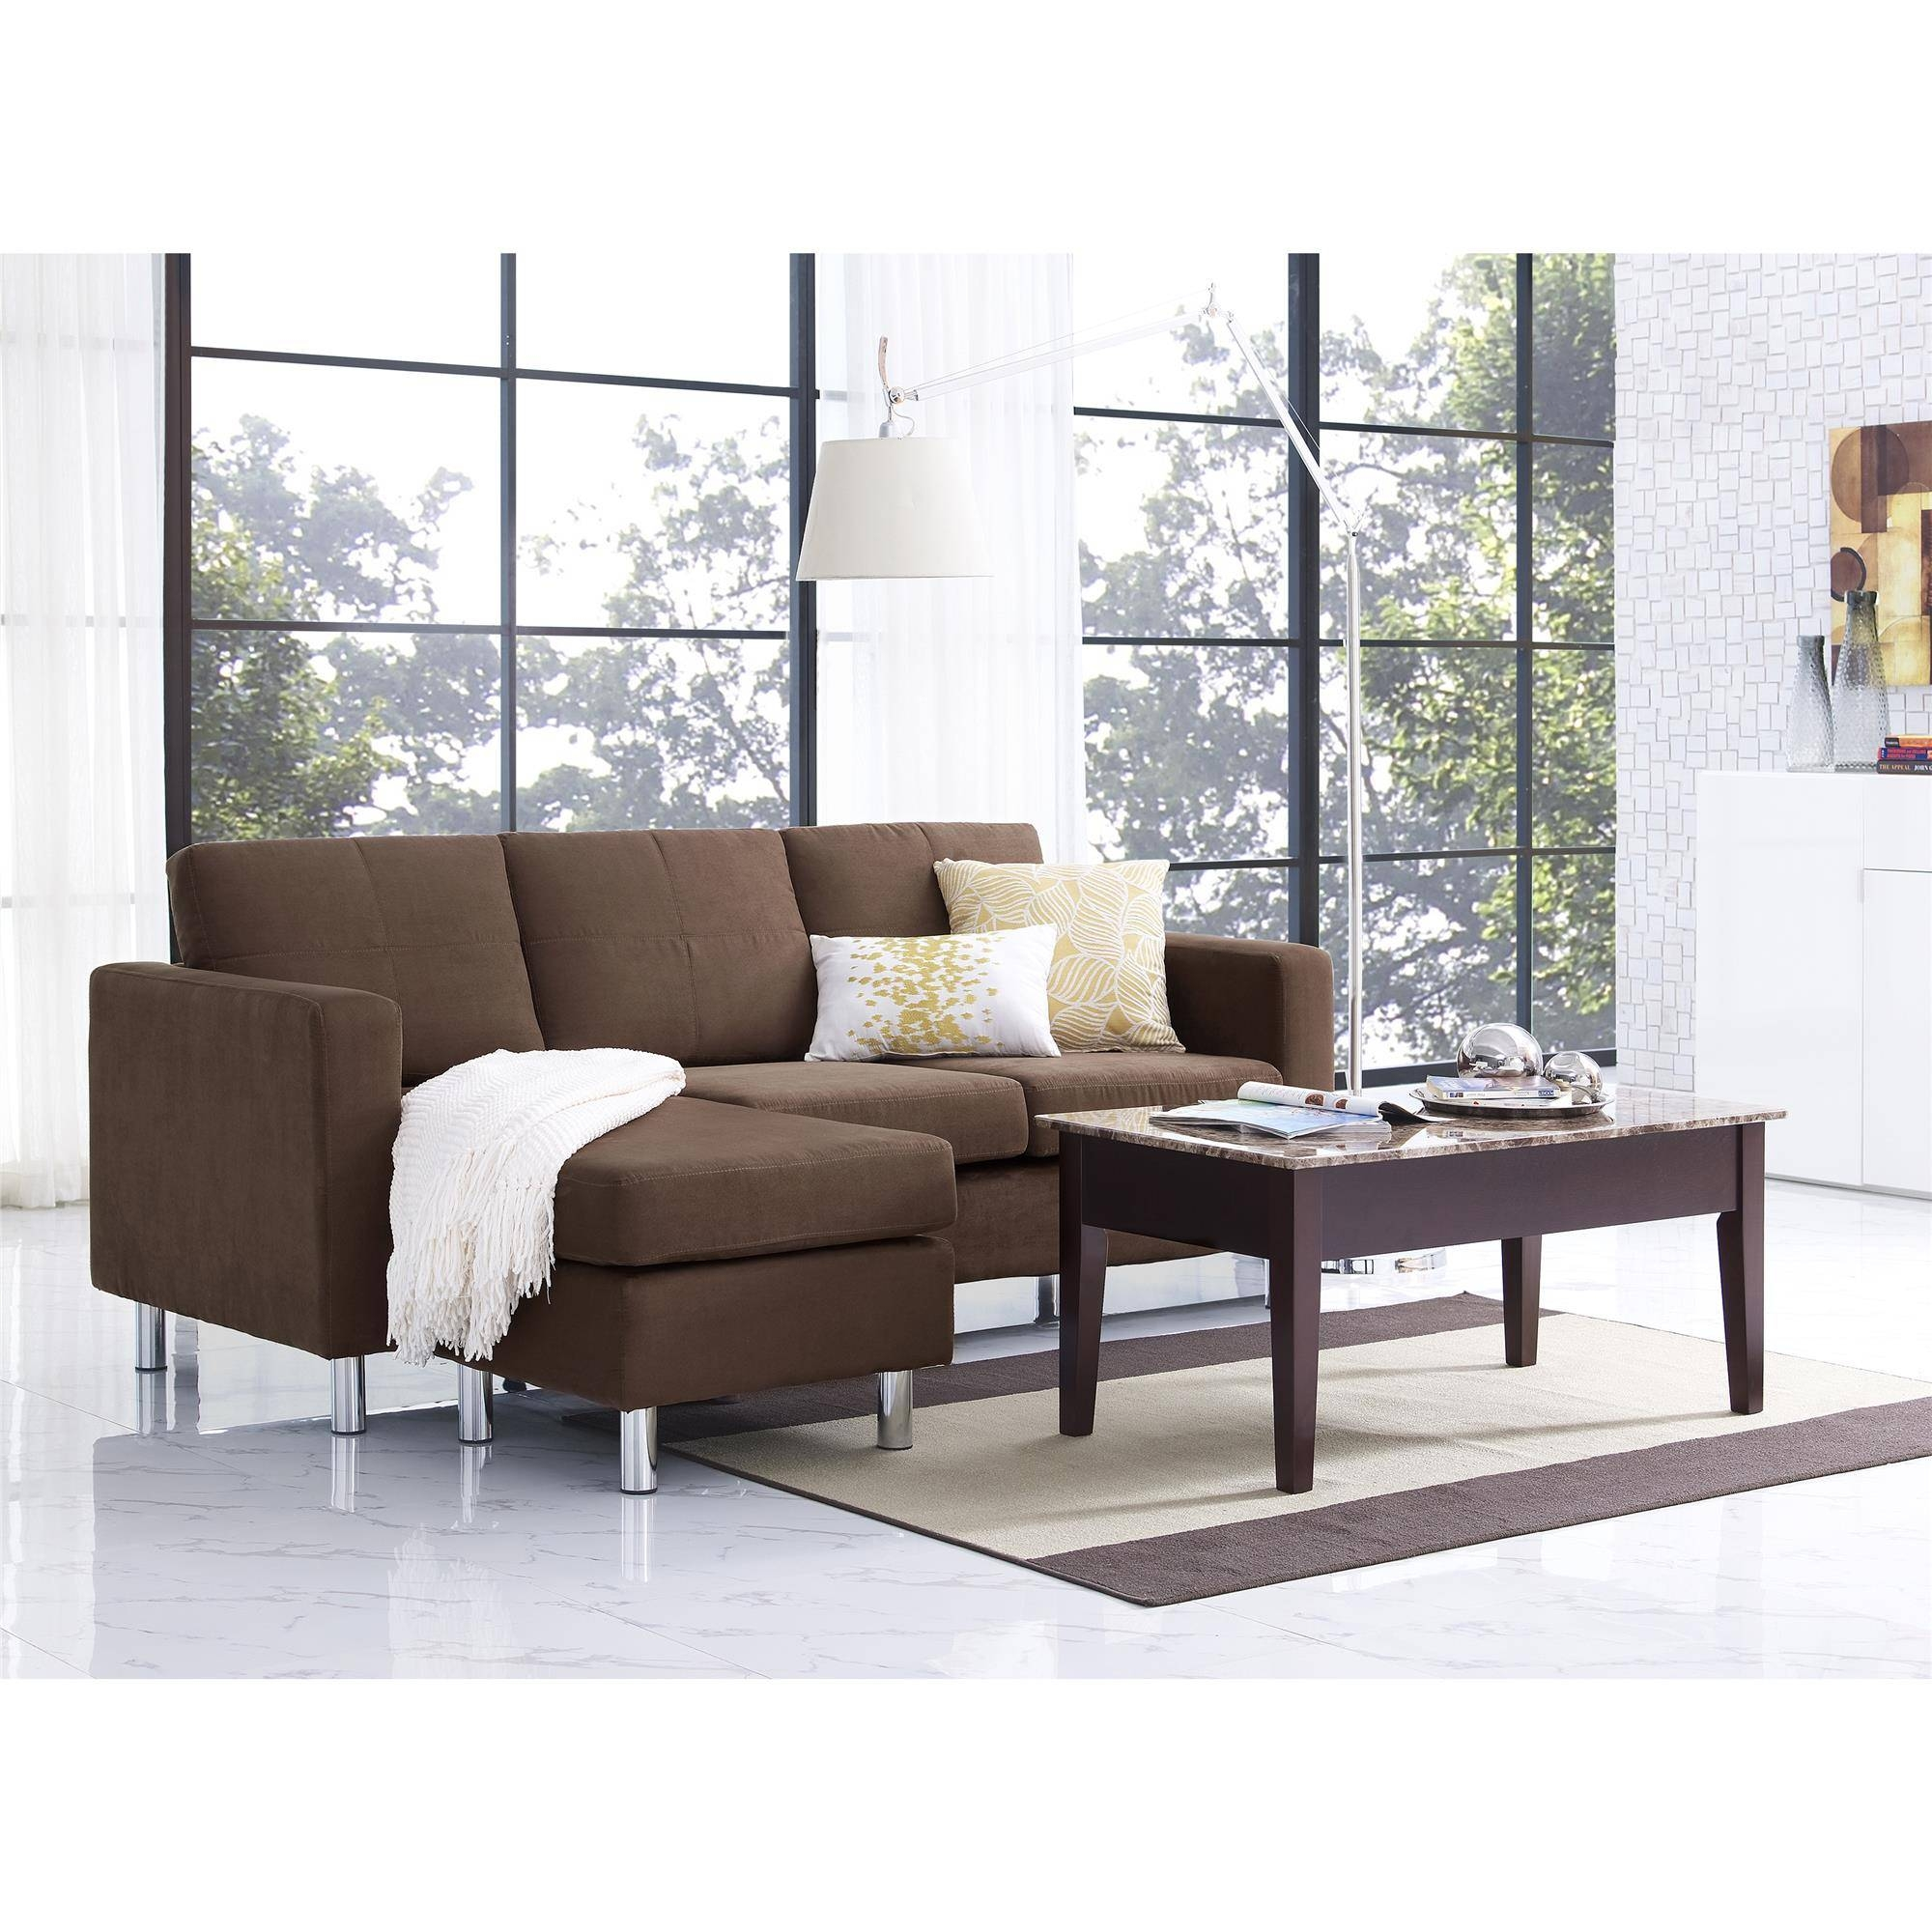 Dorel Living | Small Spaces Configurable Sectional Sofa, Brown Within Small Spaces Configurable Sectional Sofas (View 4 of 15)